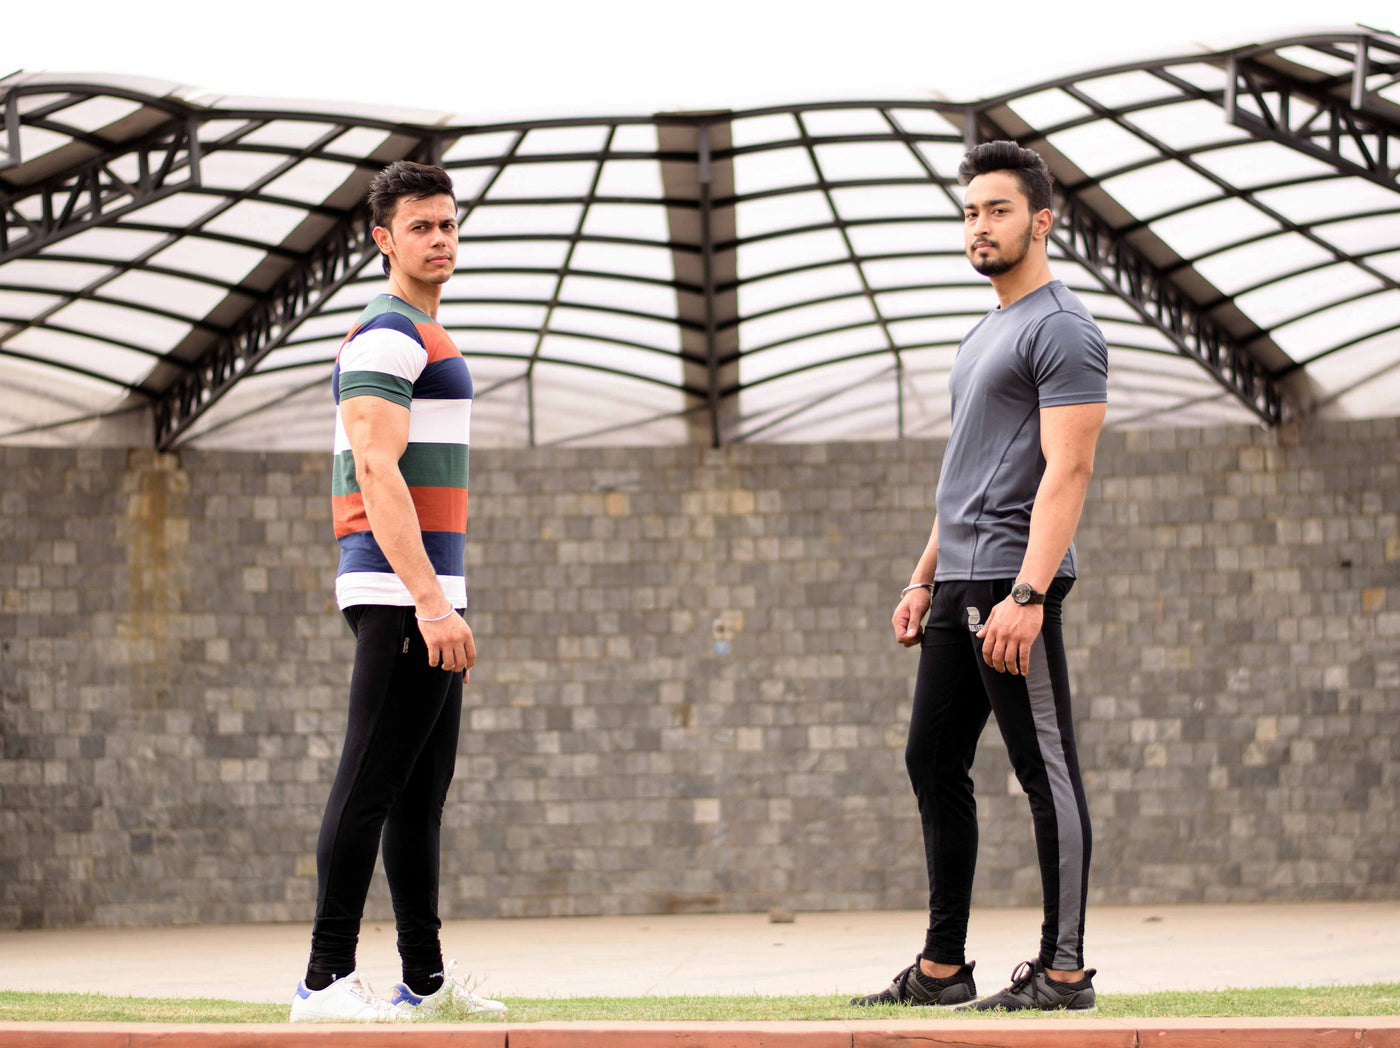 Devoted Allure Jogger V2.0 Black-Grey, All Black, Color Block Brown Dri-Stretch Grey T-shirt - Gym Wear & Sports Clothing - Stupa Shoot - Akshay Khanna(@Akay_Fitness) & Rohan Kapoor (@RohanKpr)